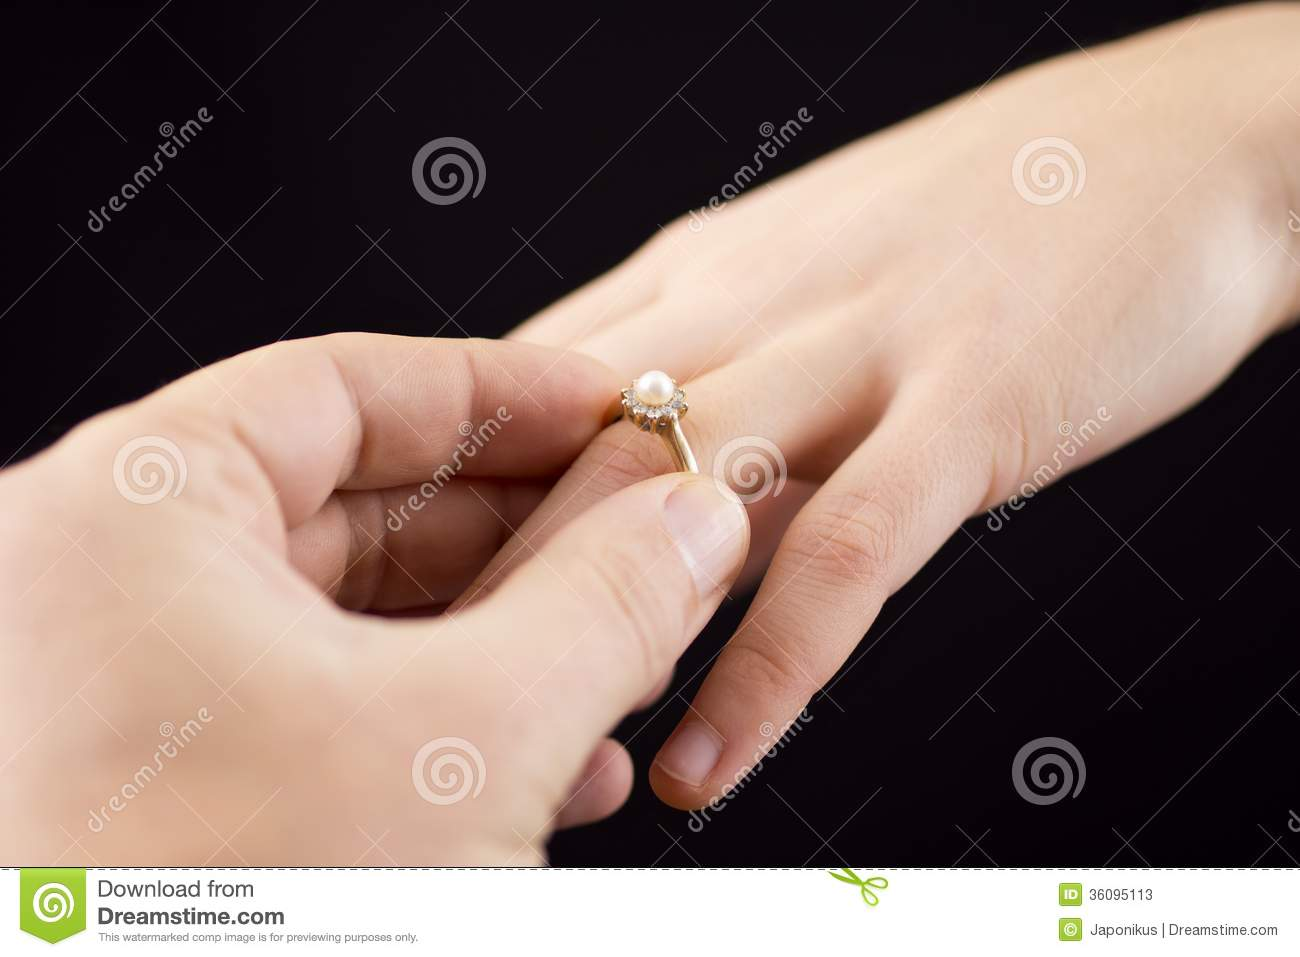 Putting A Ring On Girl\'s Hand Stock Image - Image of concept ...